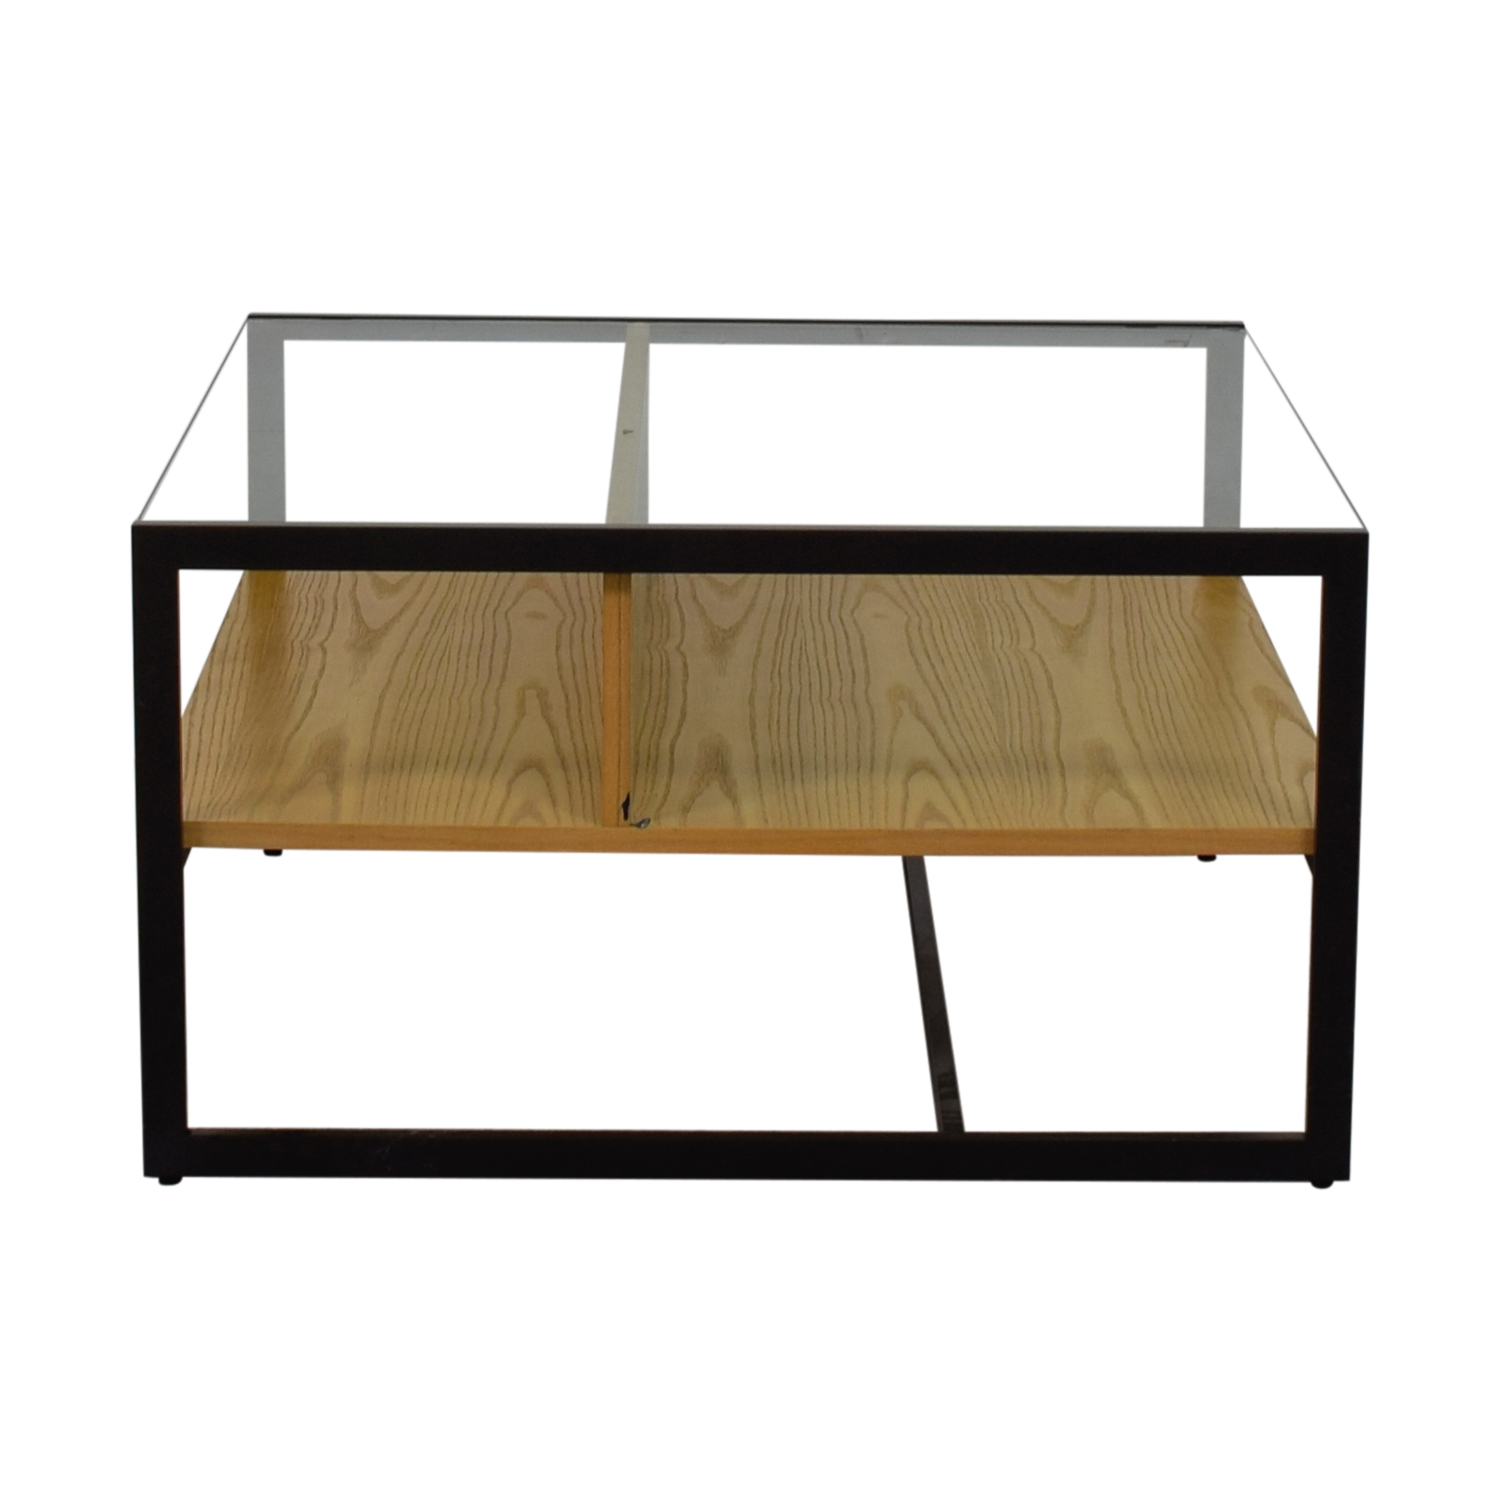 West Elm Wood and Glass Coffee Table / Tables